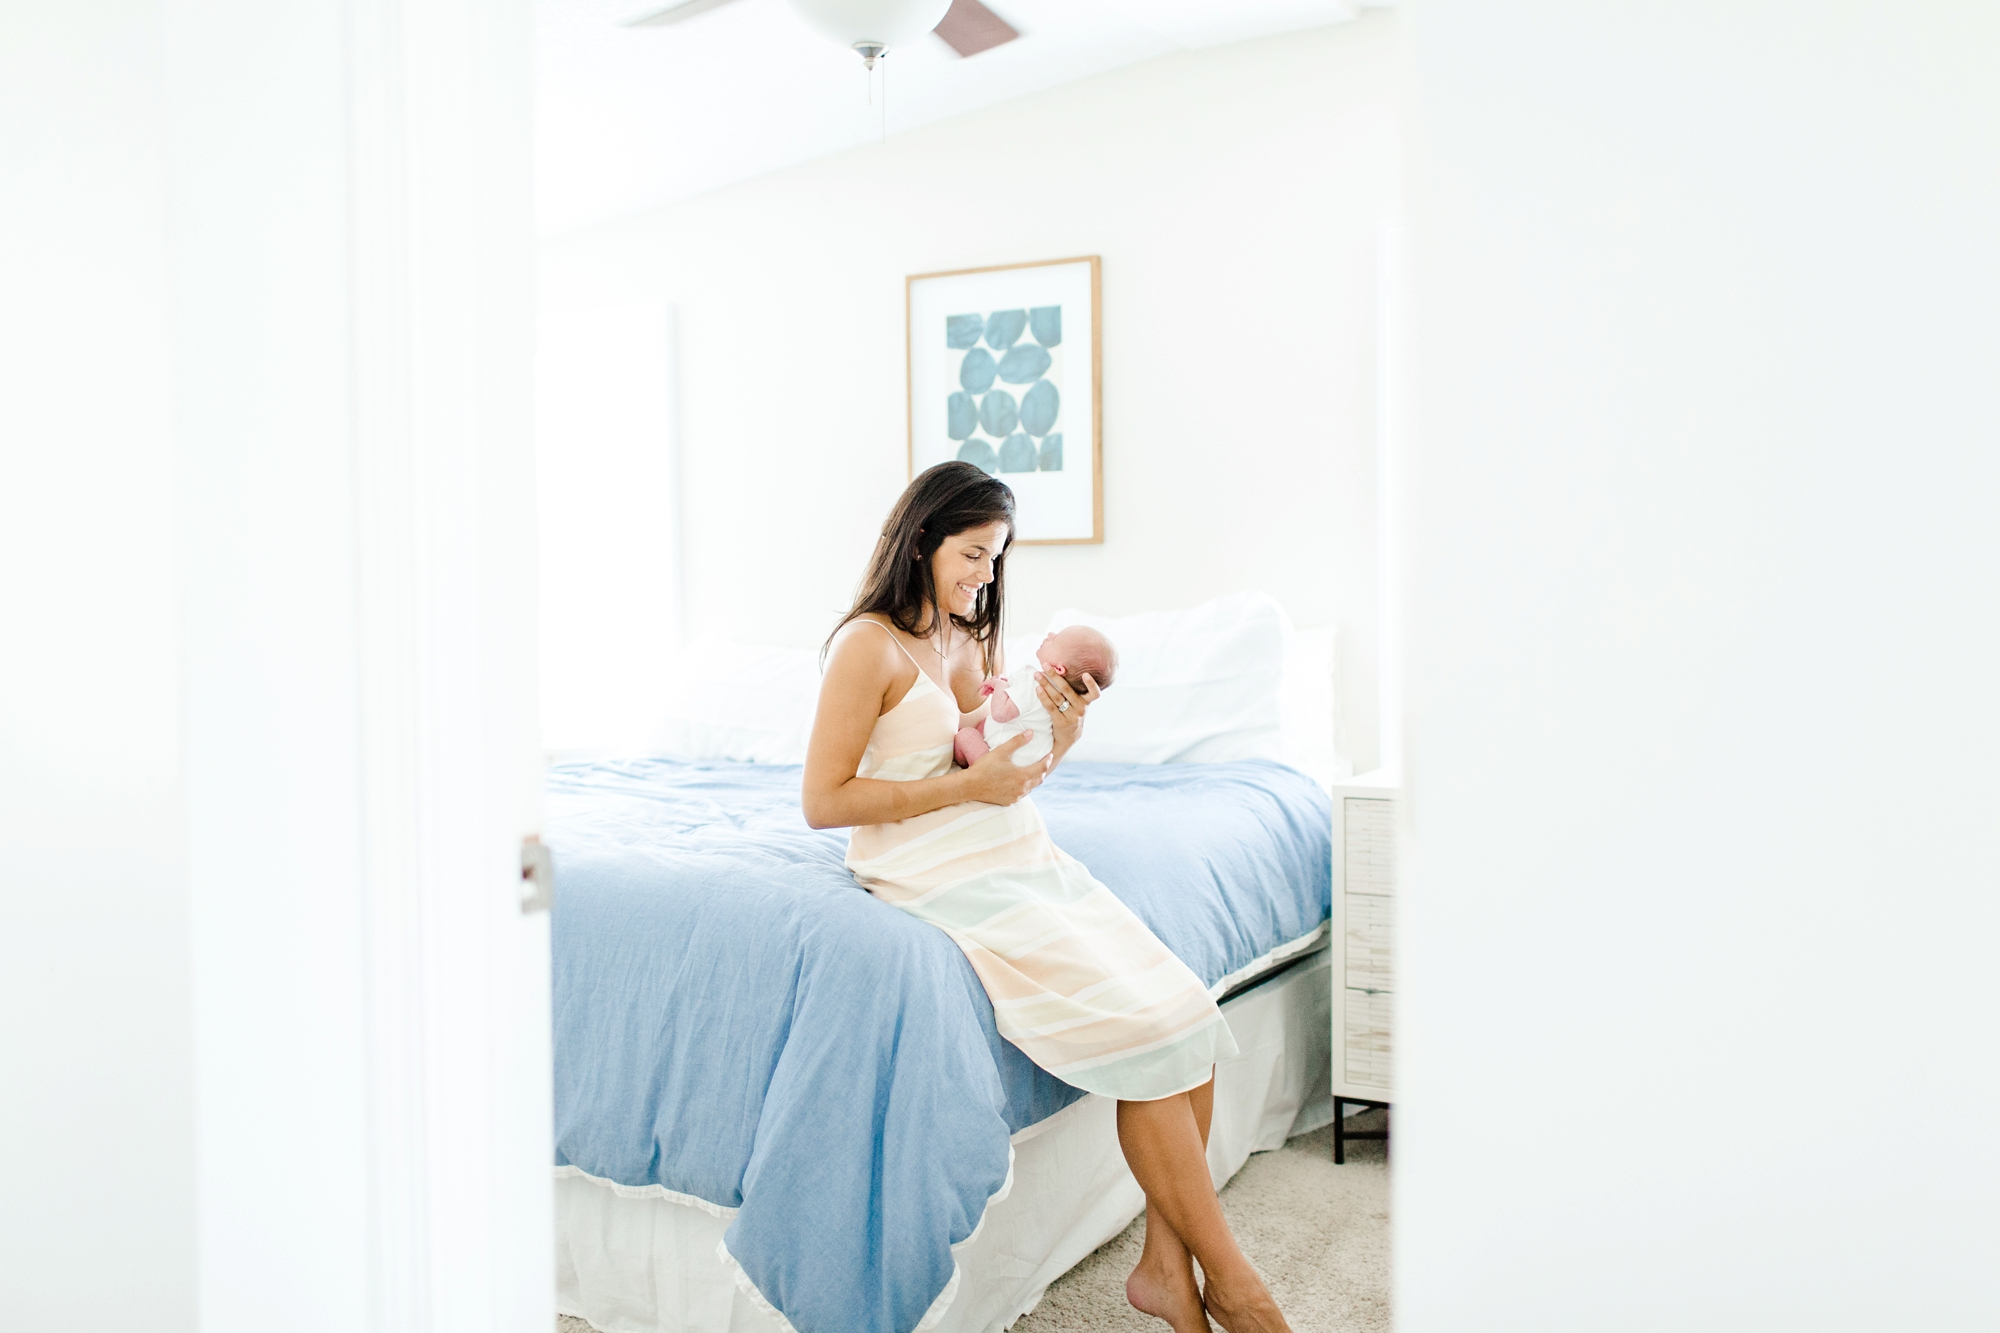 Natalie Broach Photography, Newborn Lifestyle Session, Jacksonville Beach, Florida. Jacksonville Newborn Photographer